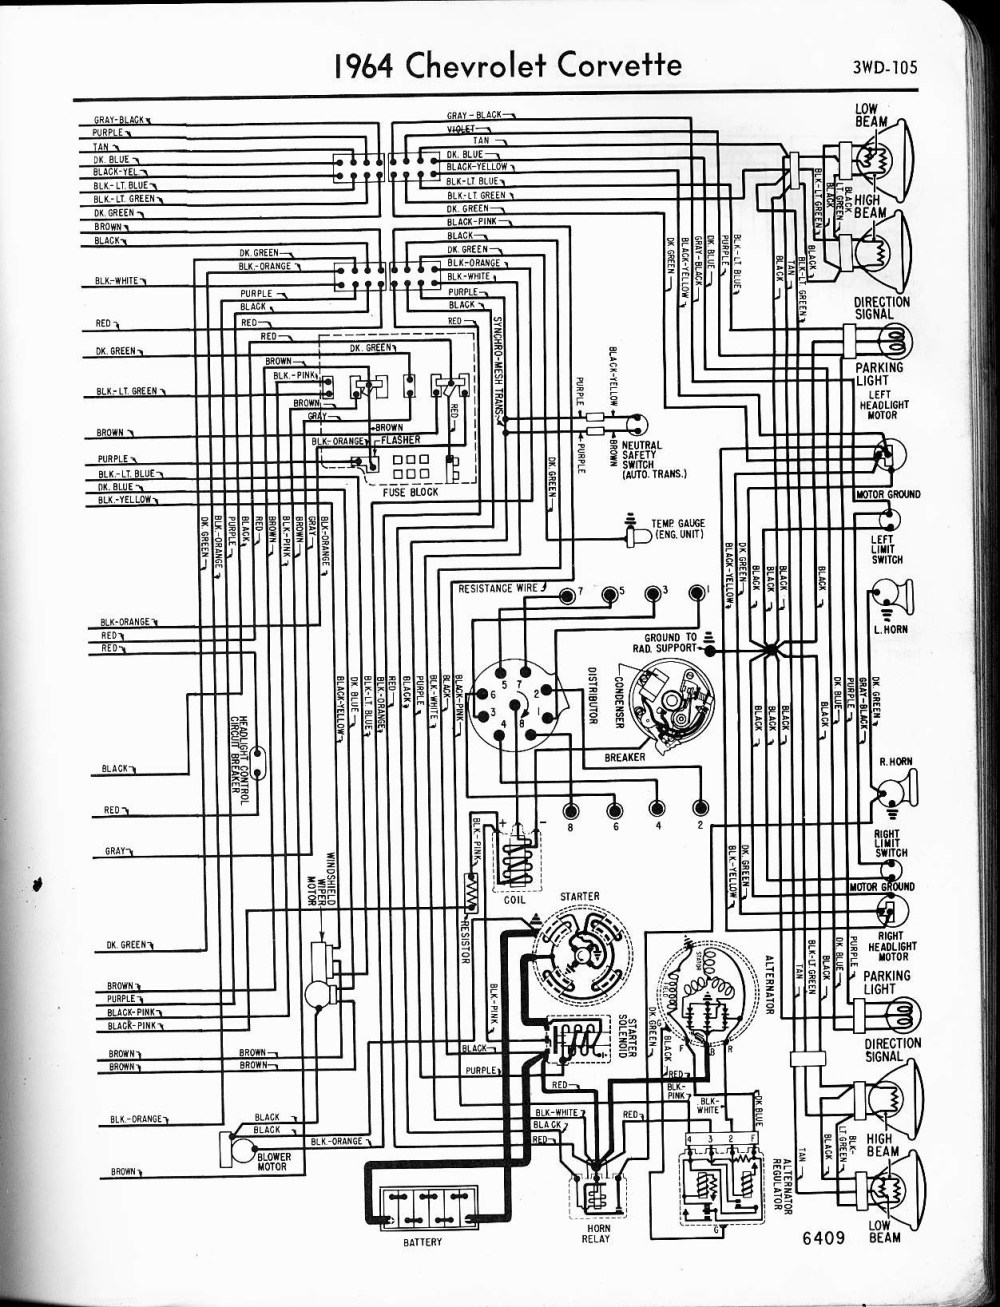 medium resolution of 1959 corvette wiring diagram wiring diagram67 corvette wiring diagram index listing of wiring diagrams72 corvette wiring